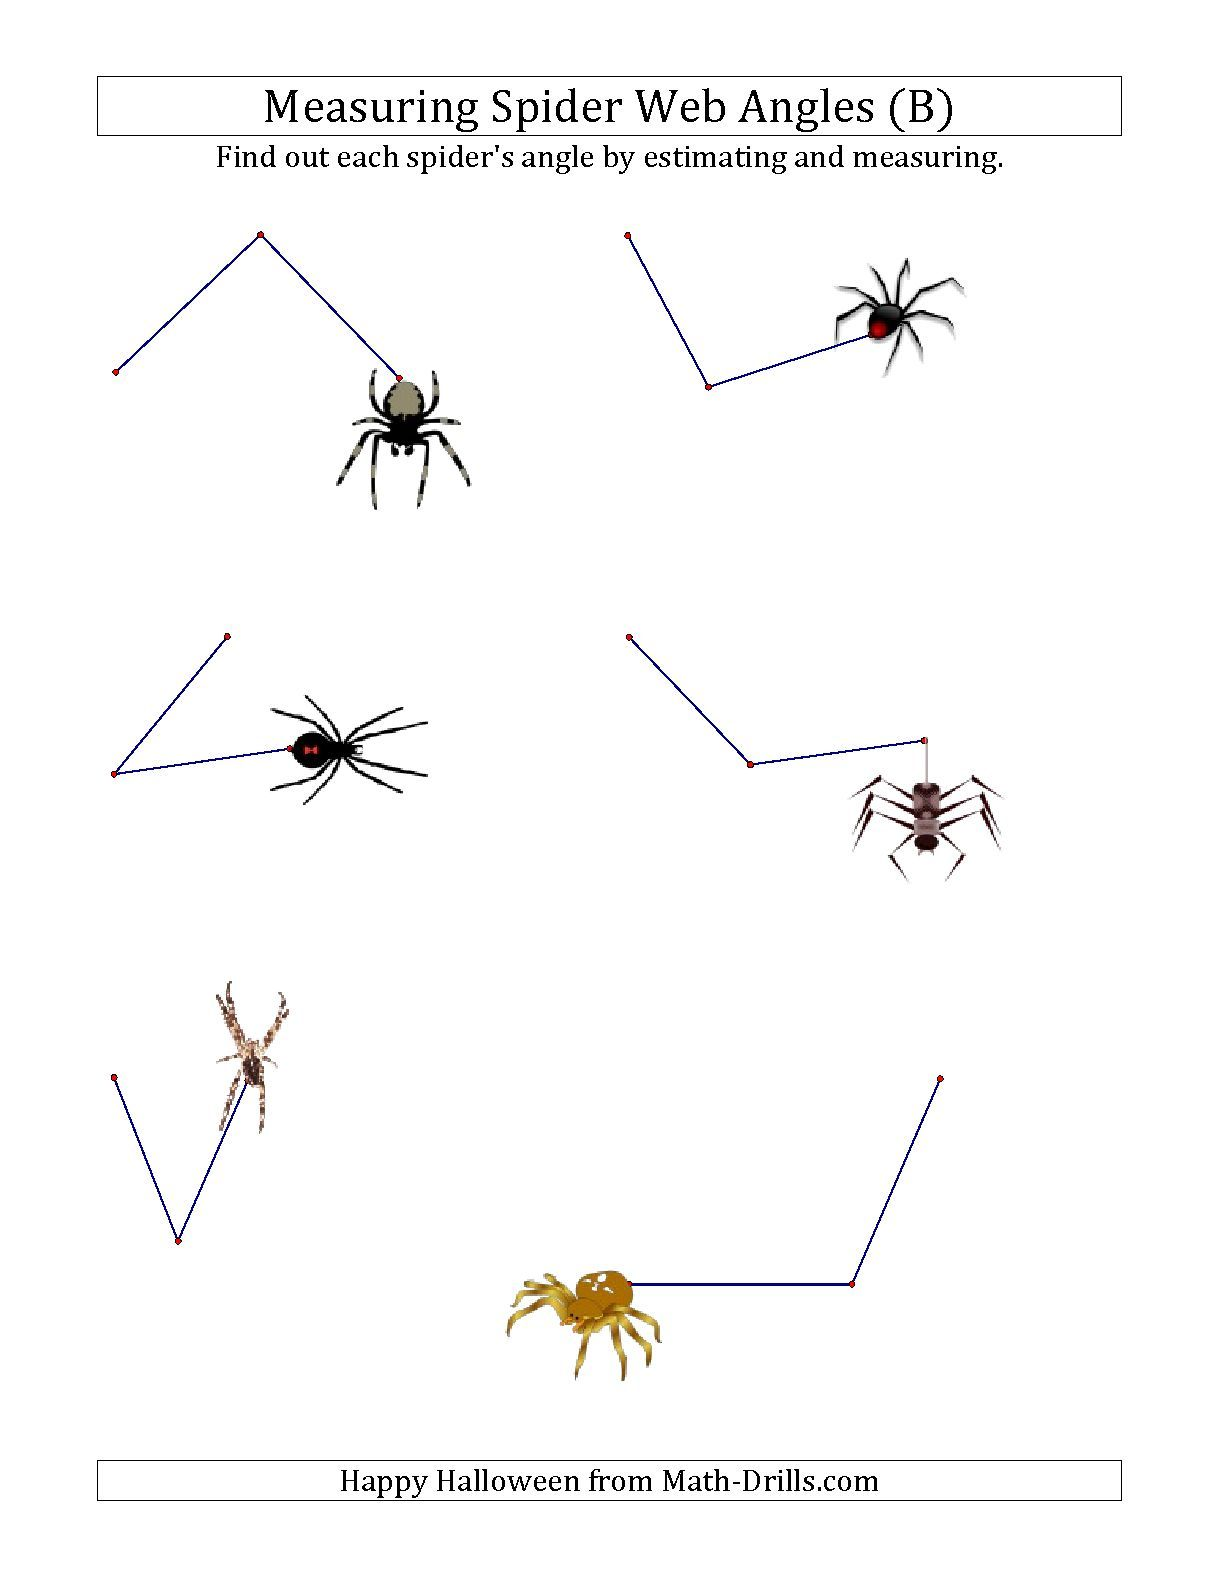 The Measuring Spider Web Angles B